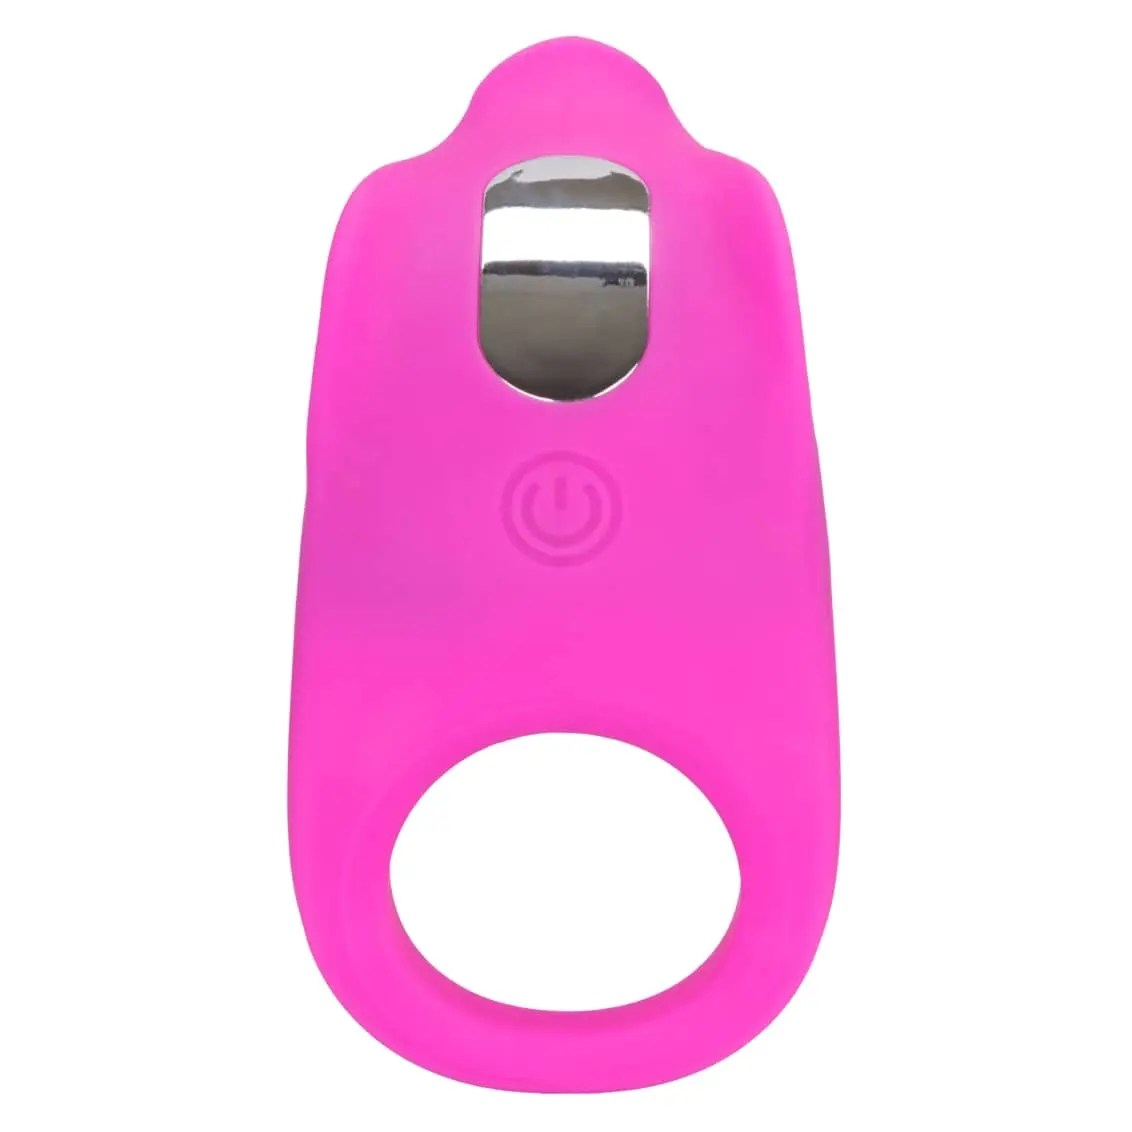 Teasing Enhancer - Silicone Rechargeable Couples Ring